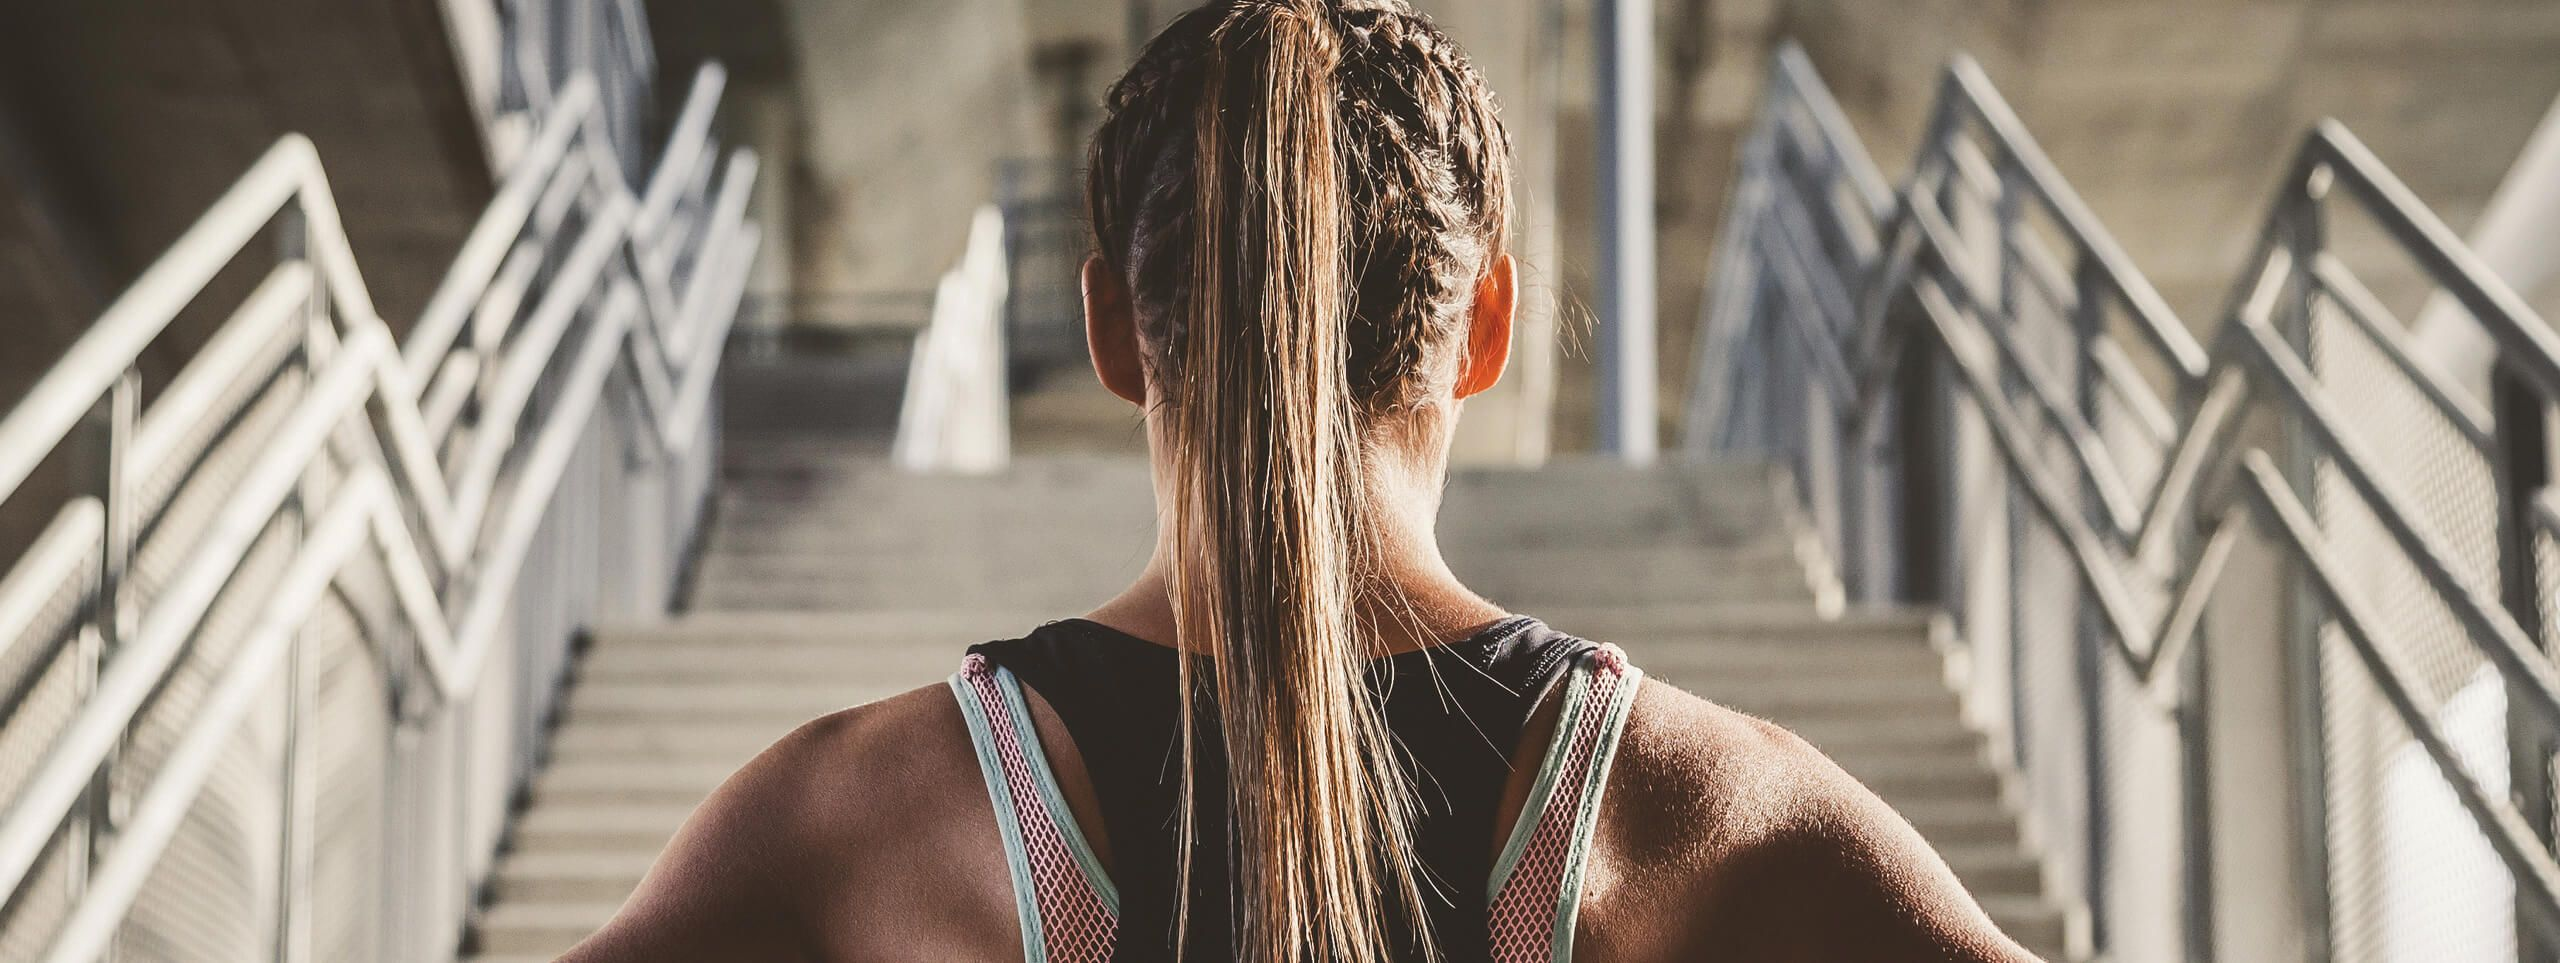 Woman wears high ponytail hairstyle whilst working out